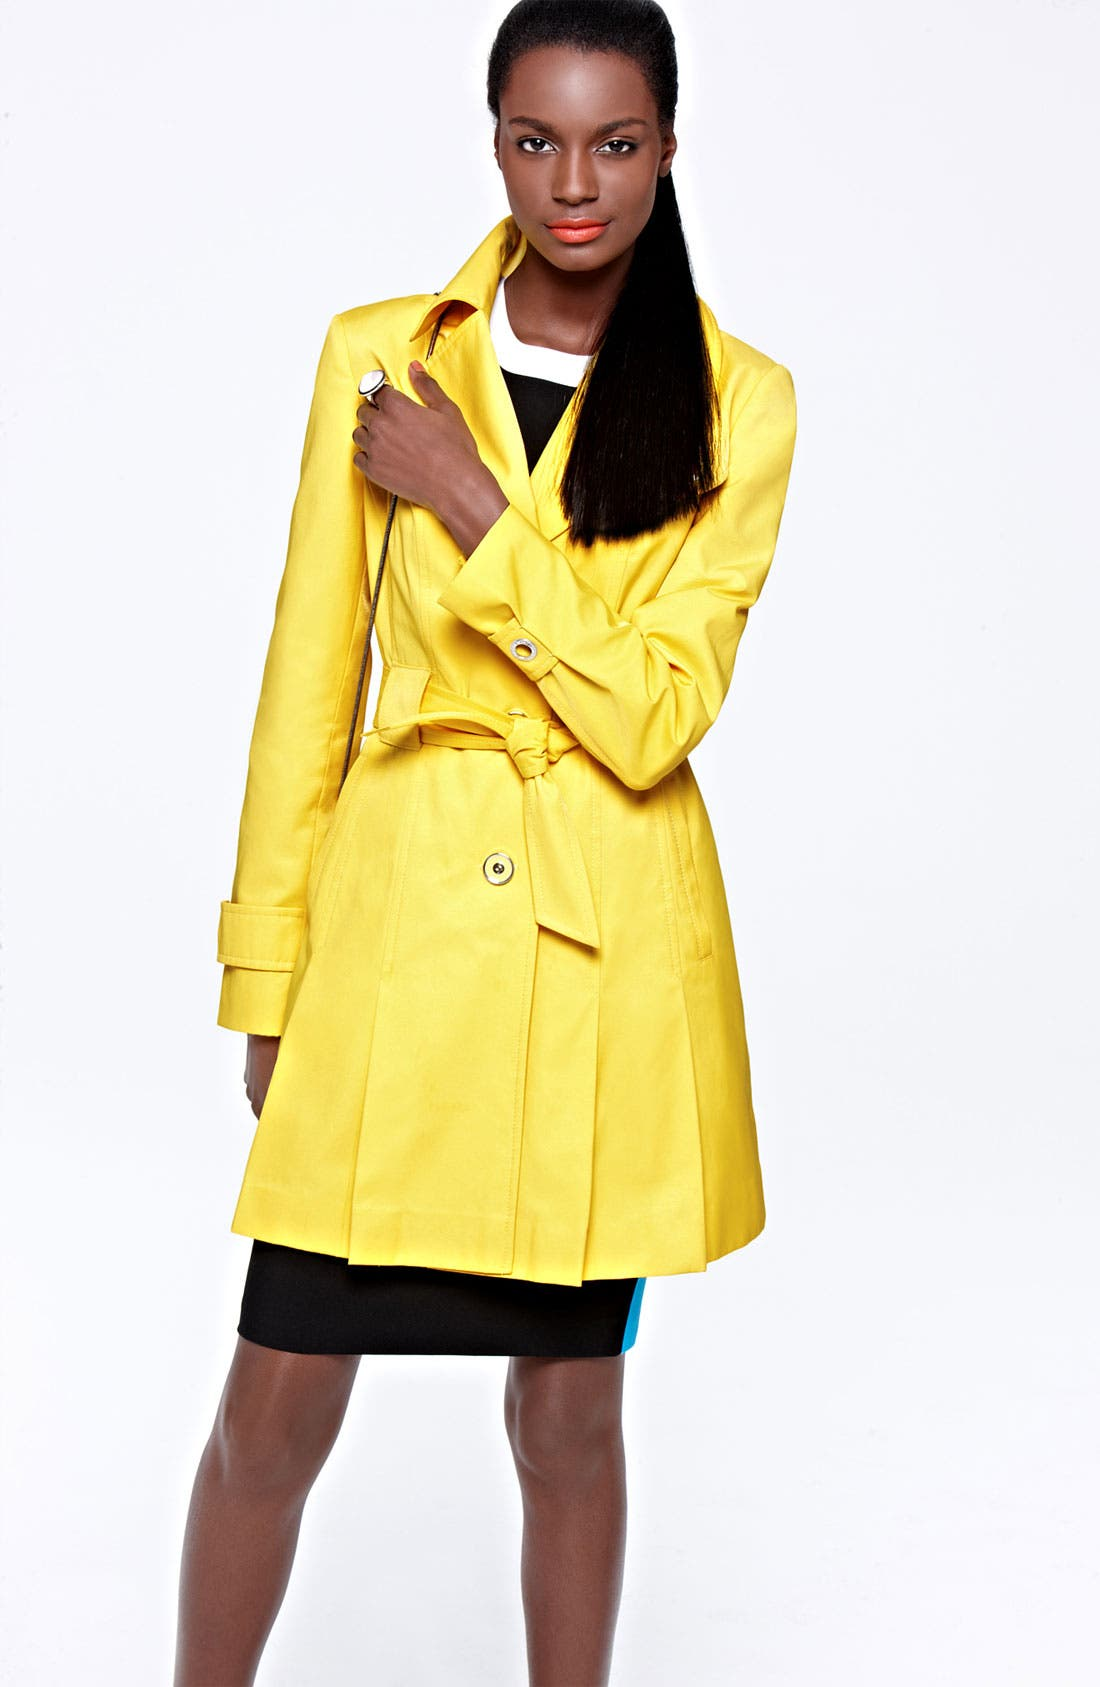 Main Image - Via Spiga Trench Coat & Calvin Klein Sheath Dress